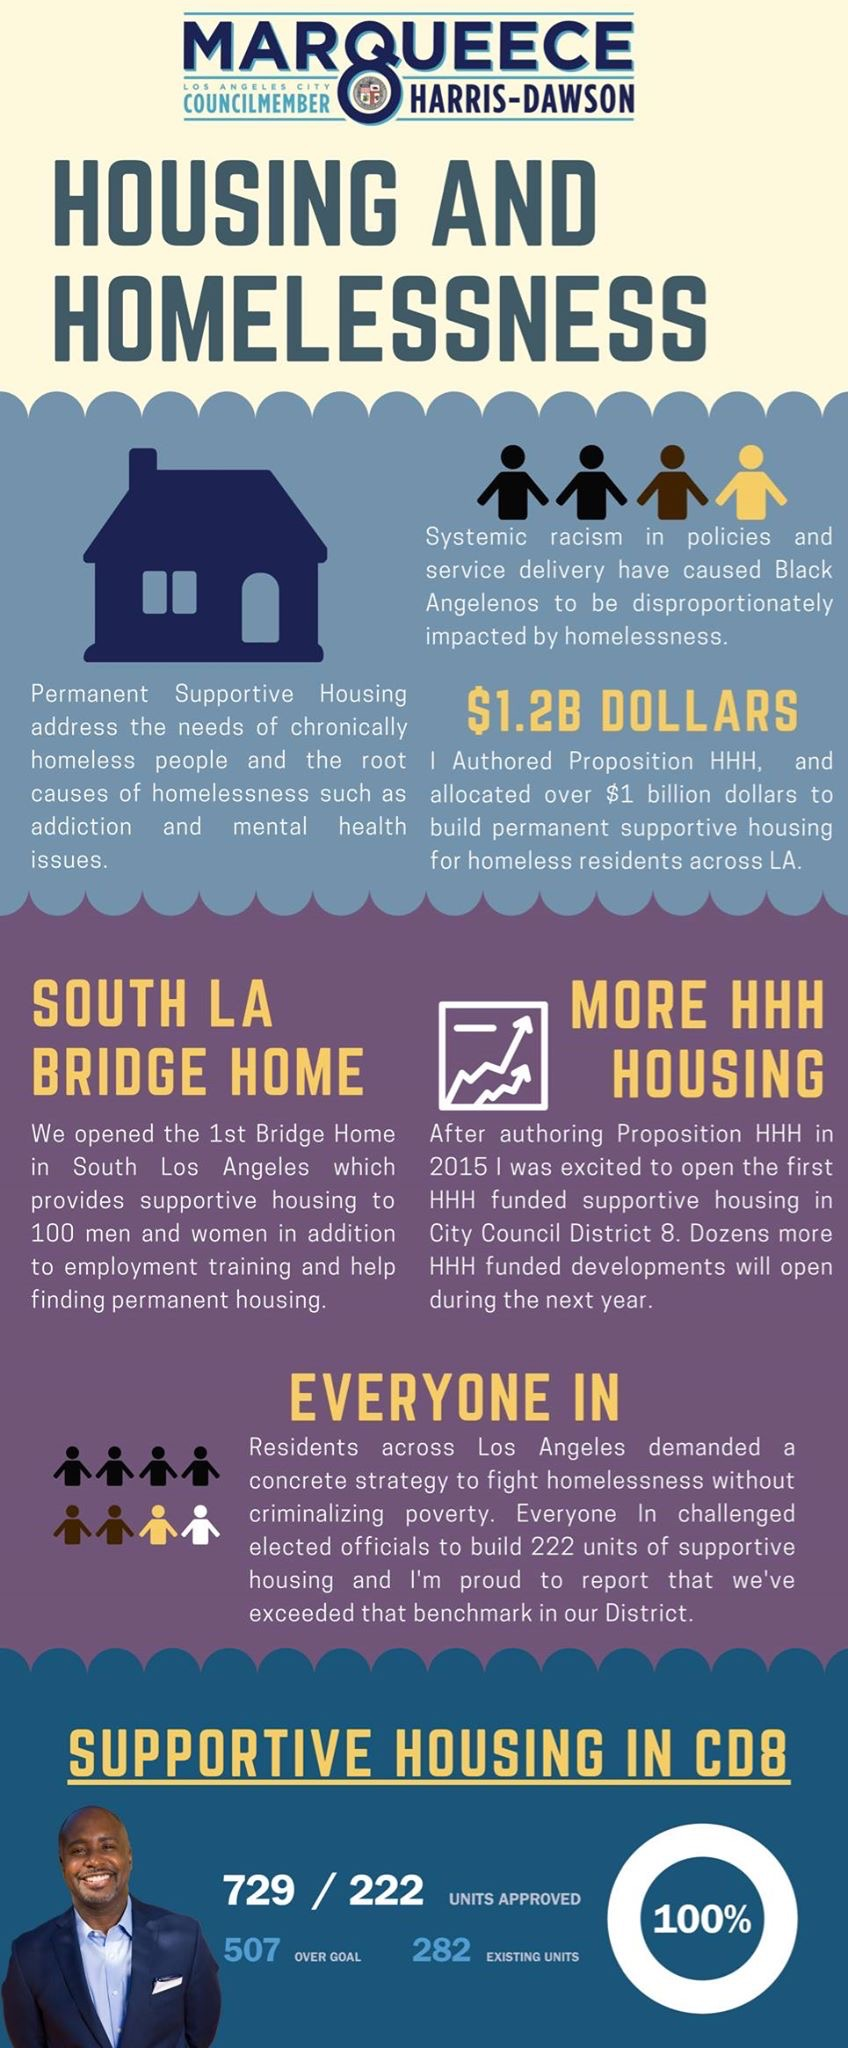 Progress Report on Housing & Homelessness